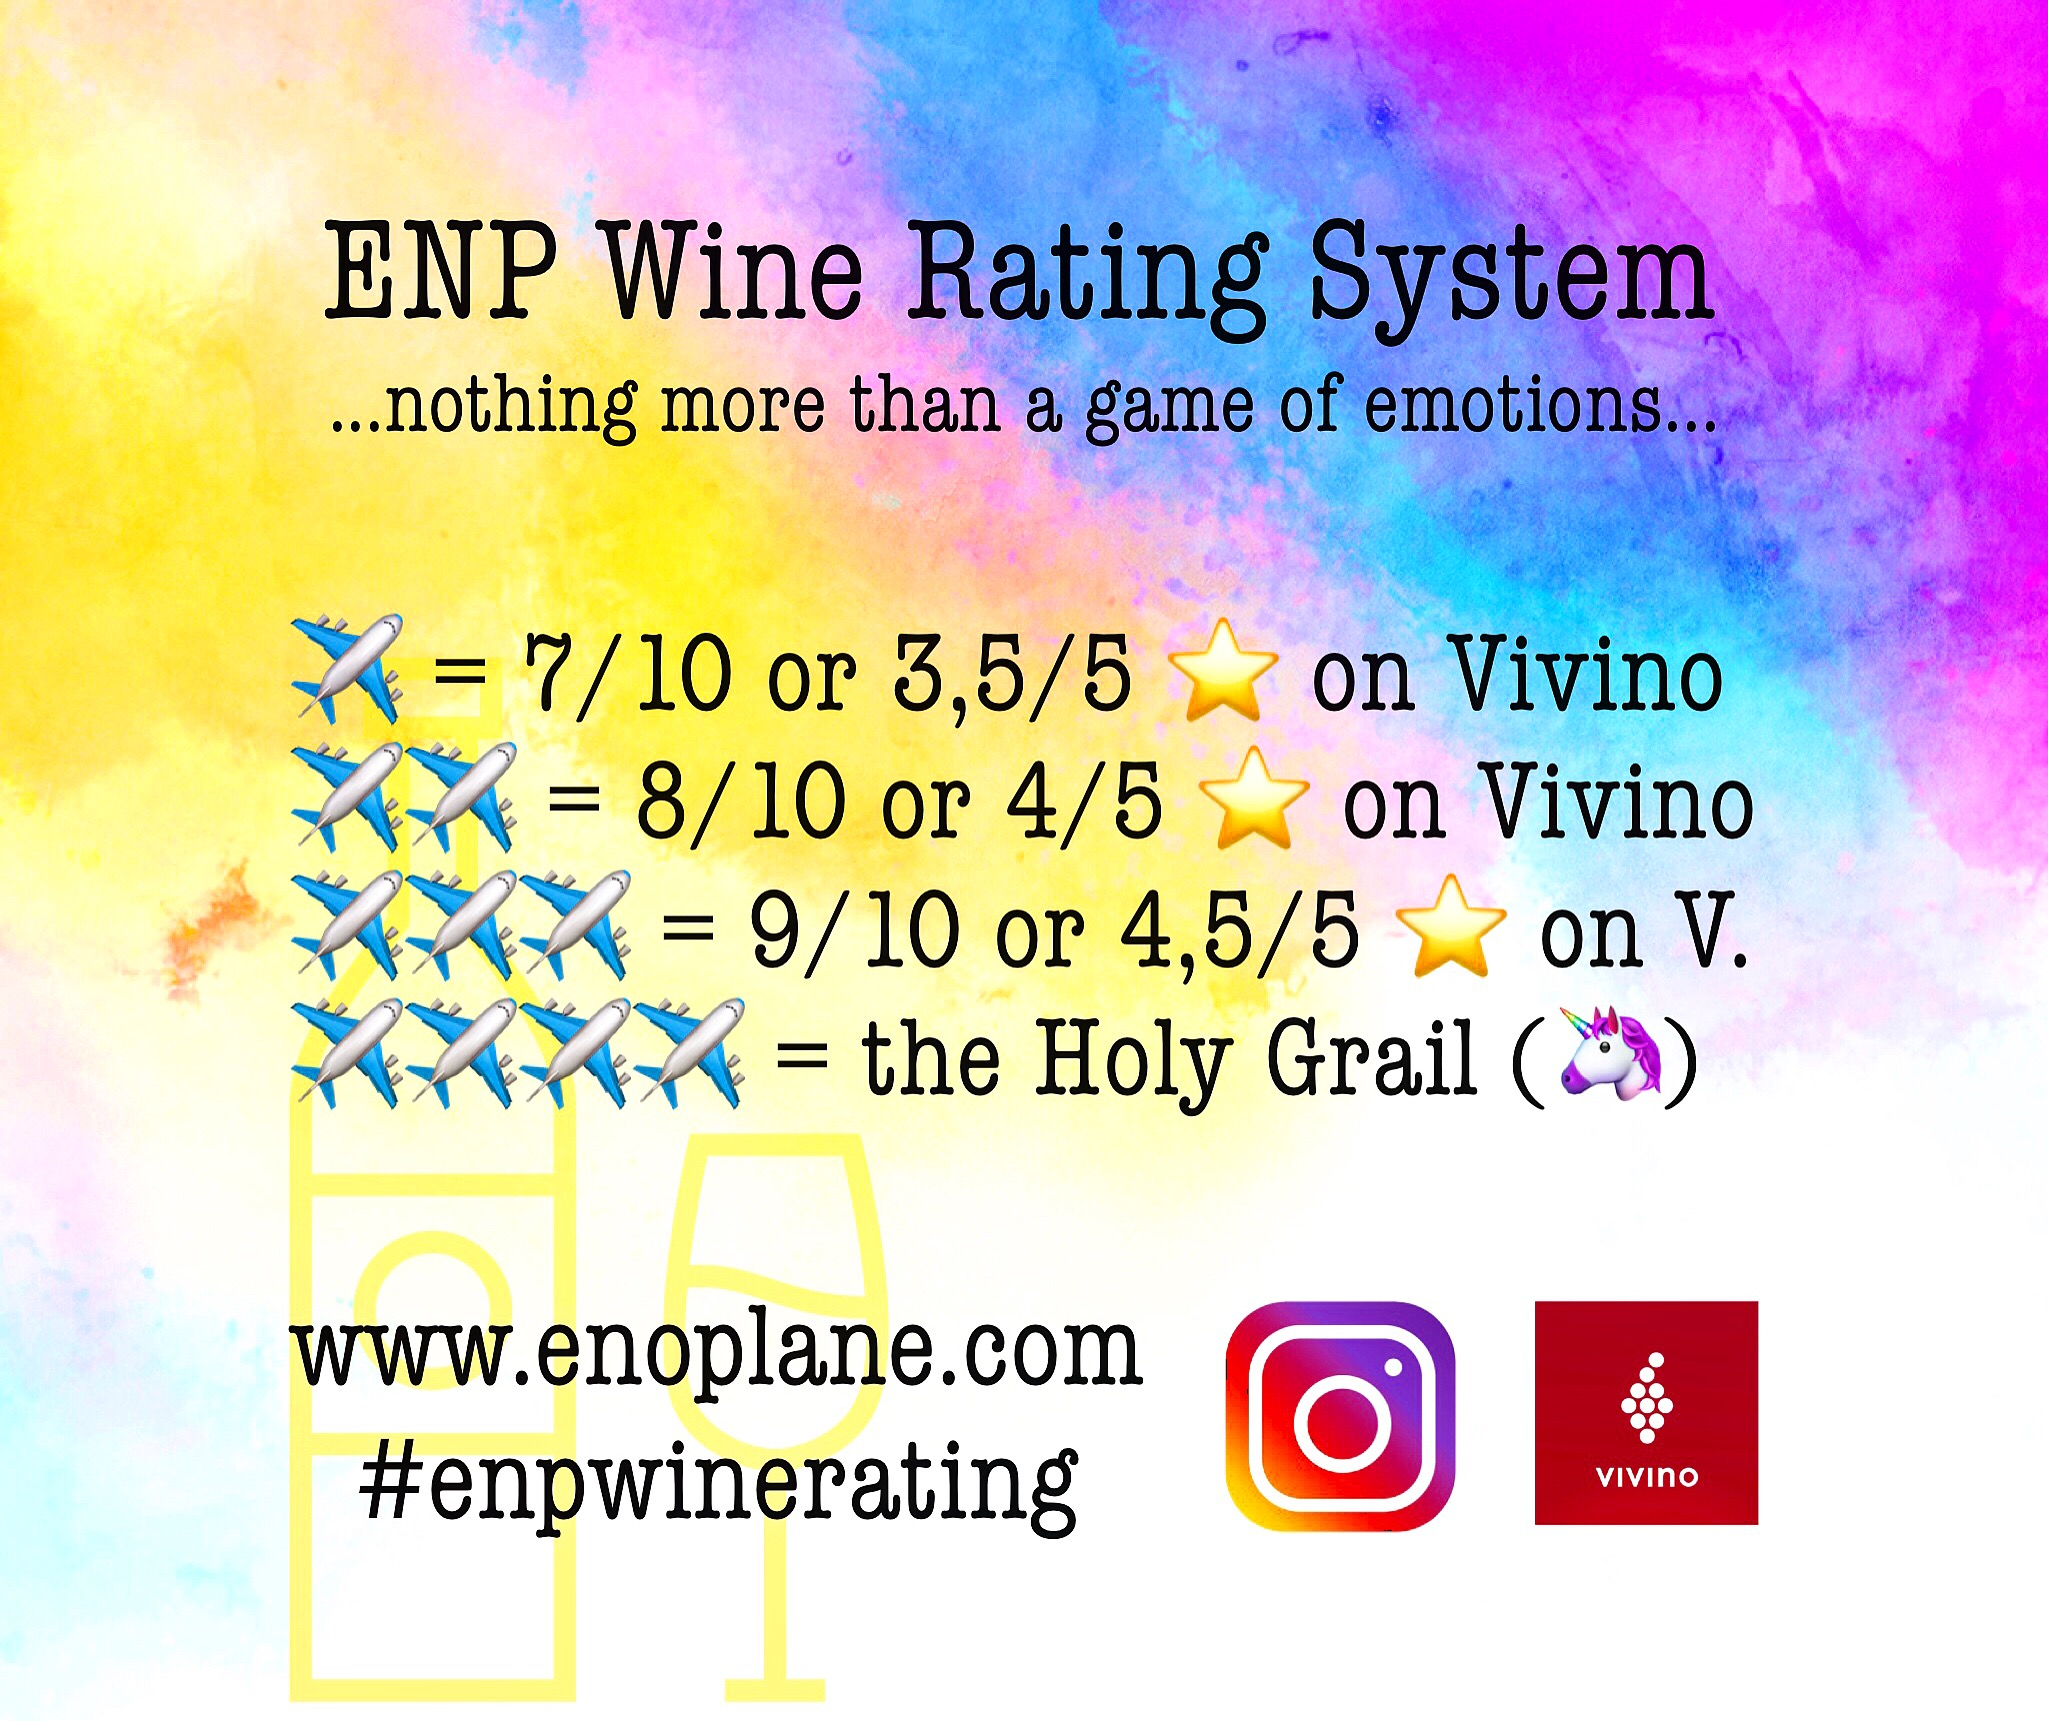 ENP Wine Rating System